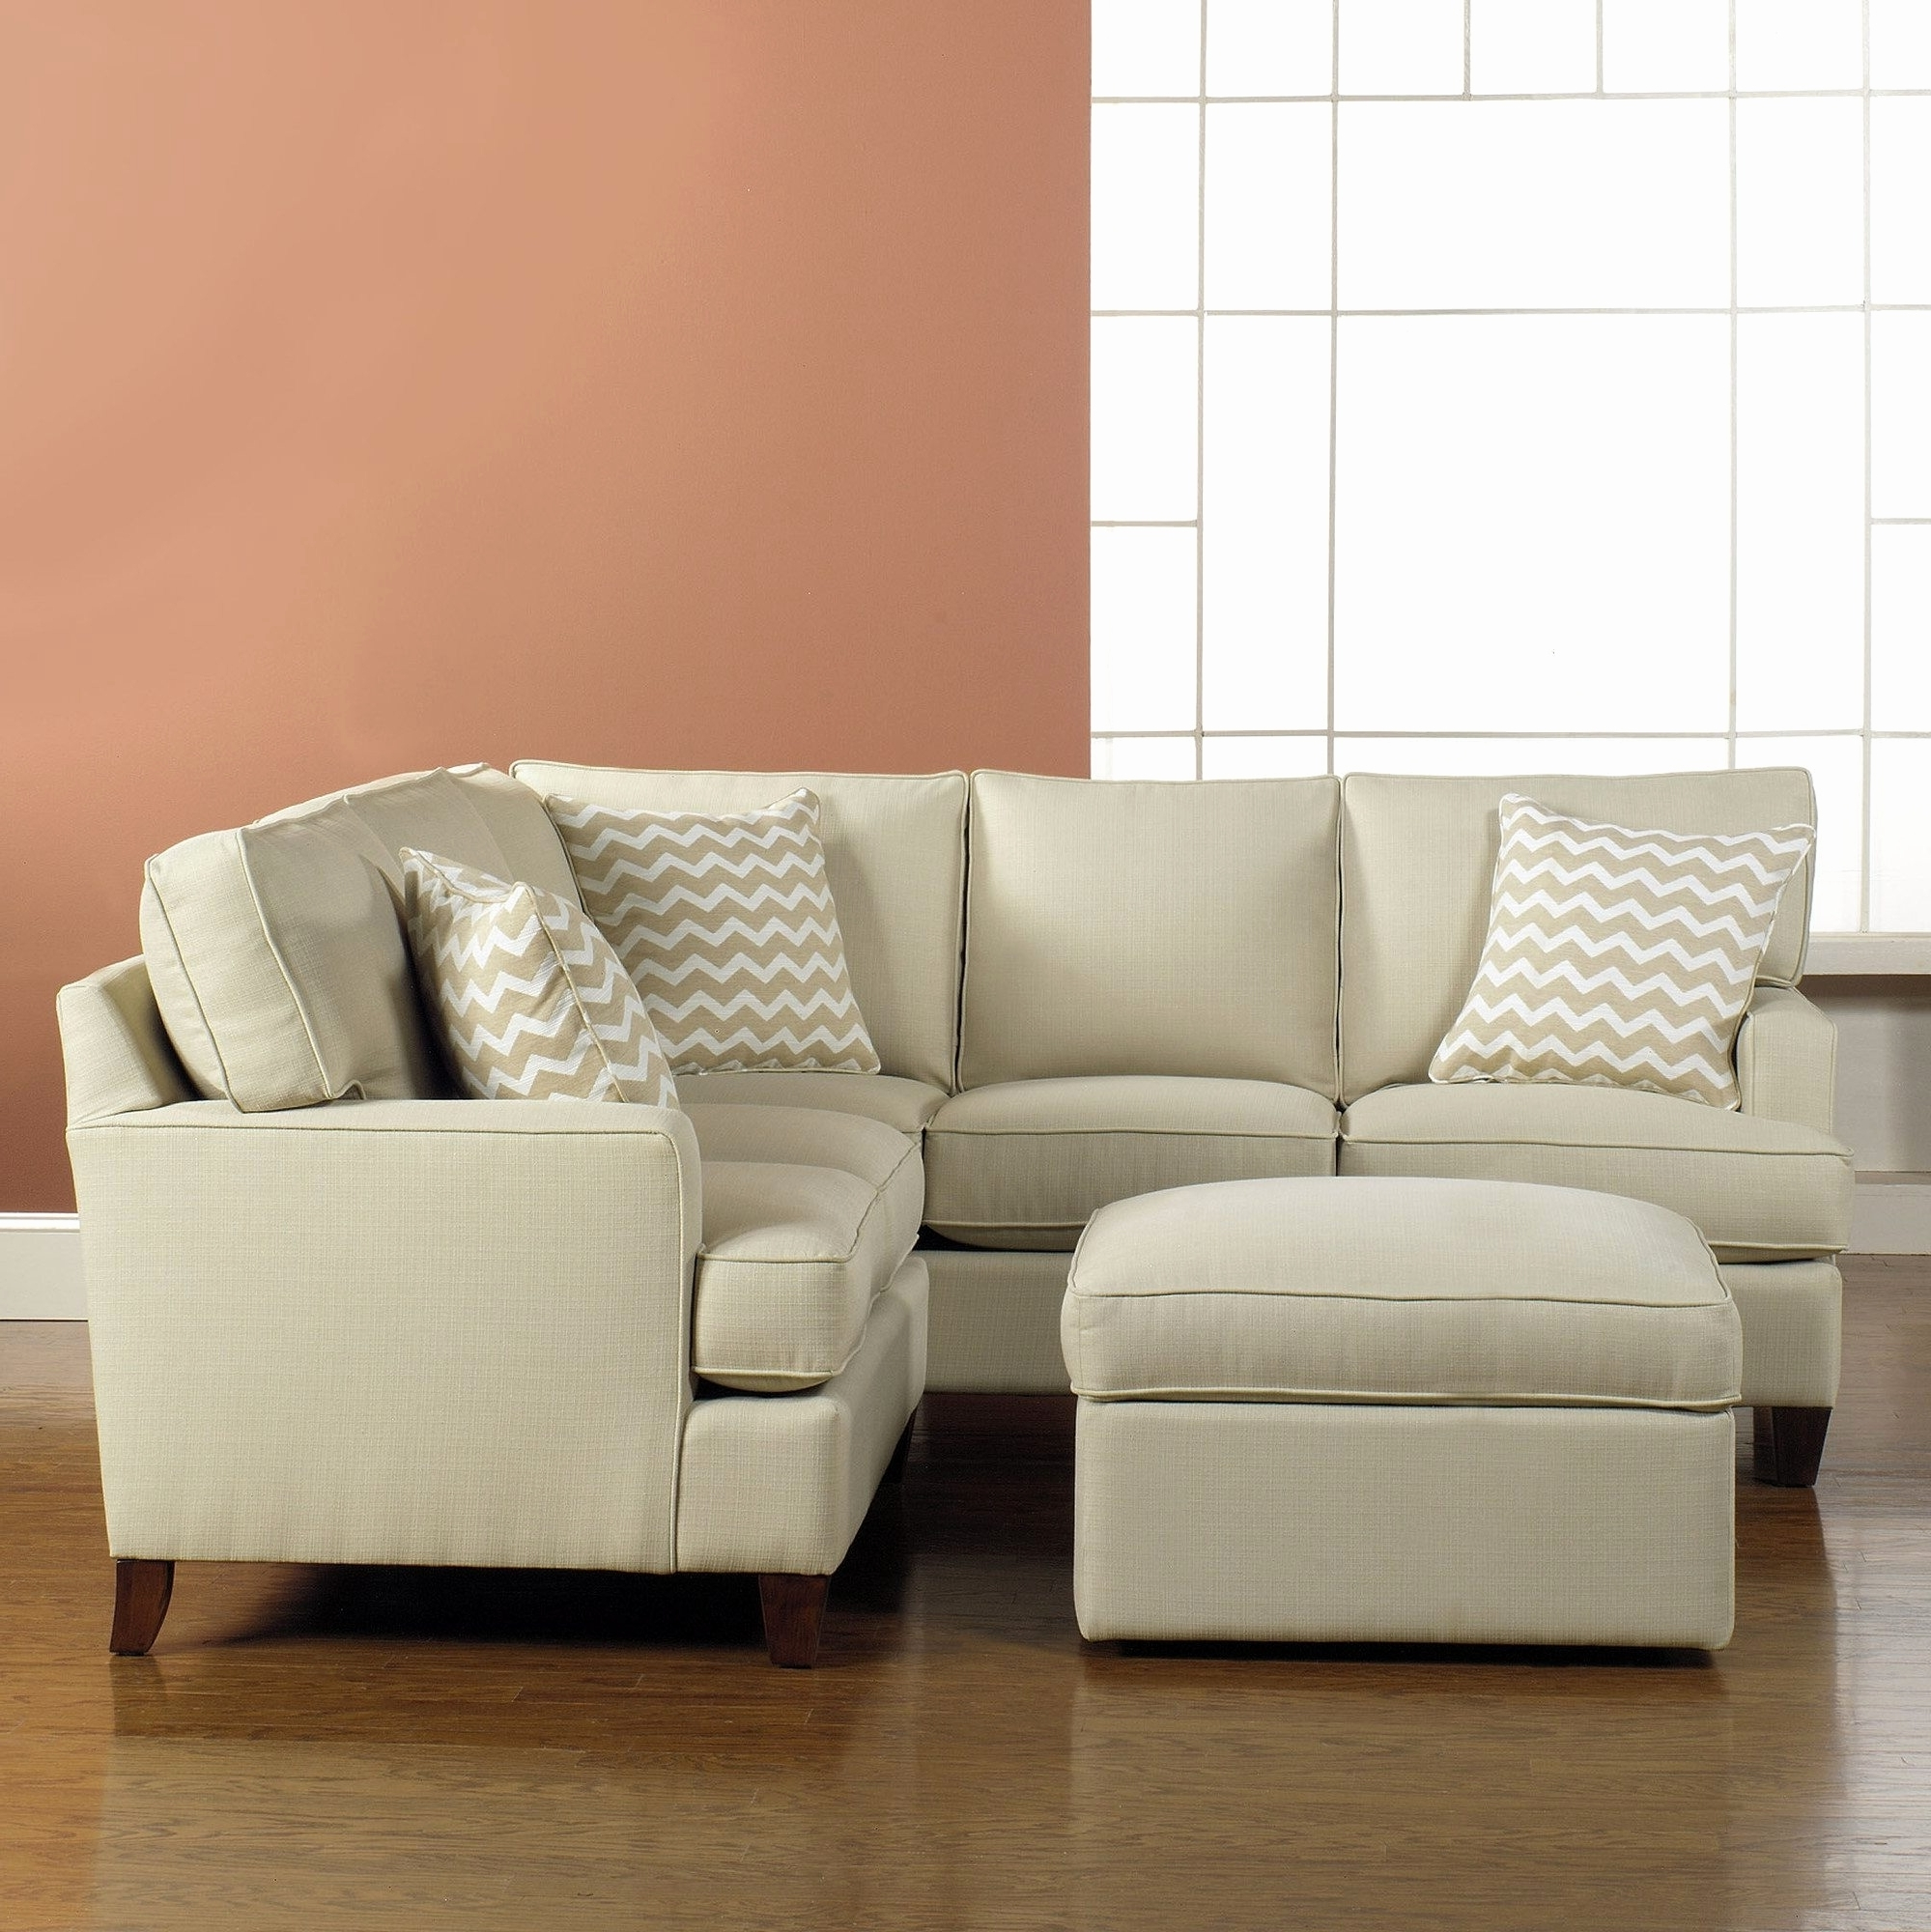 Small Space Sectional Sofa Elegant Sectional Sofa Design Awesome Pertaining To Widely Used Tiny Sofas (View 9 of 15)